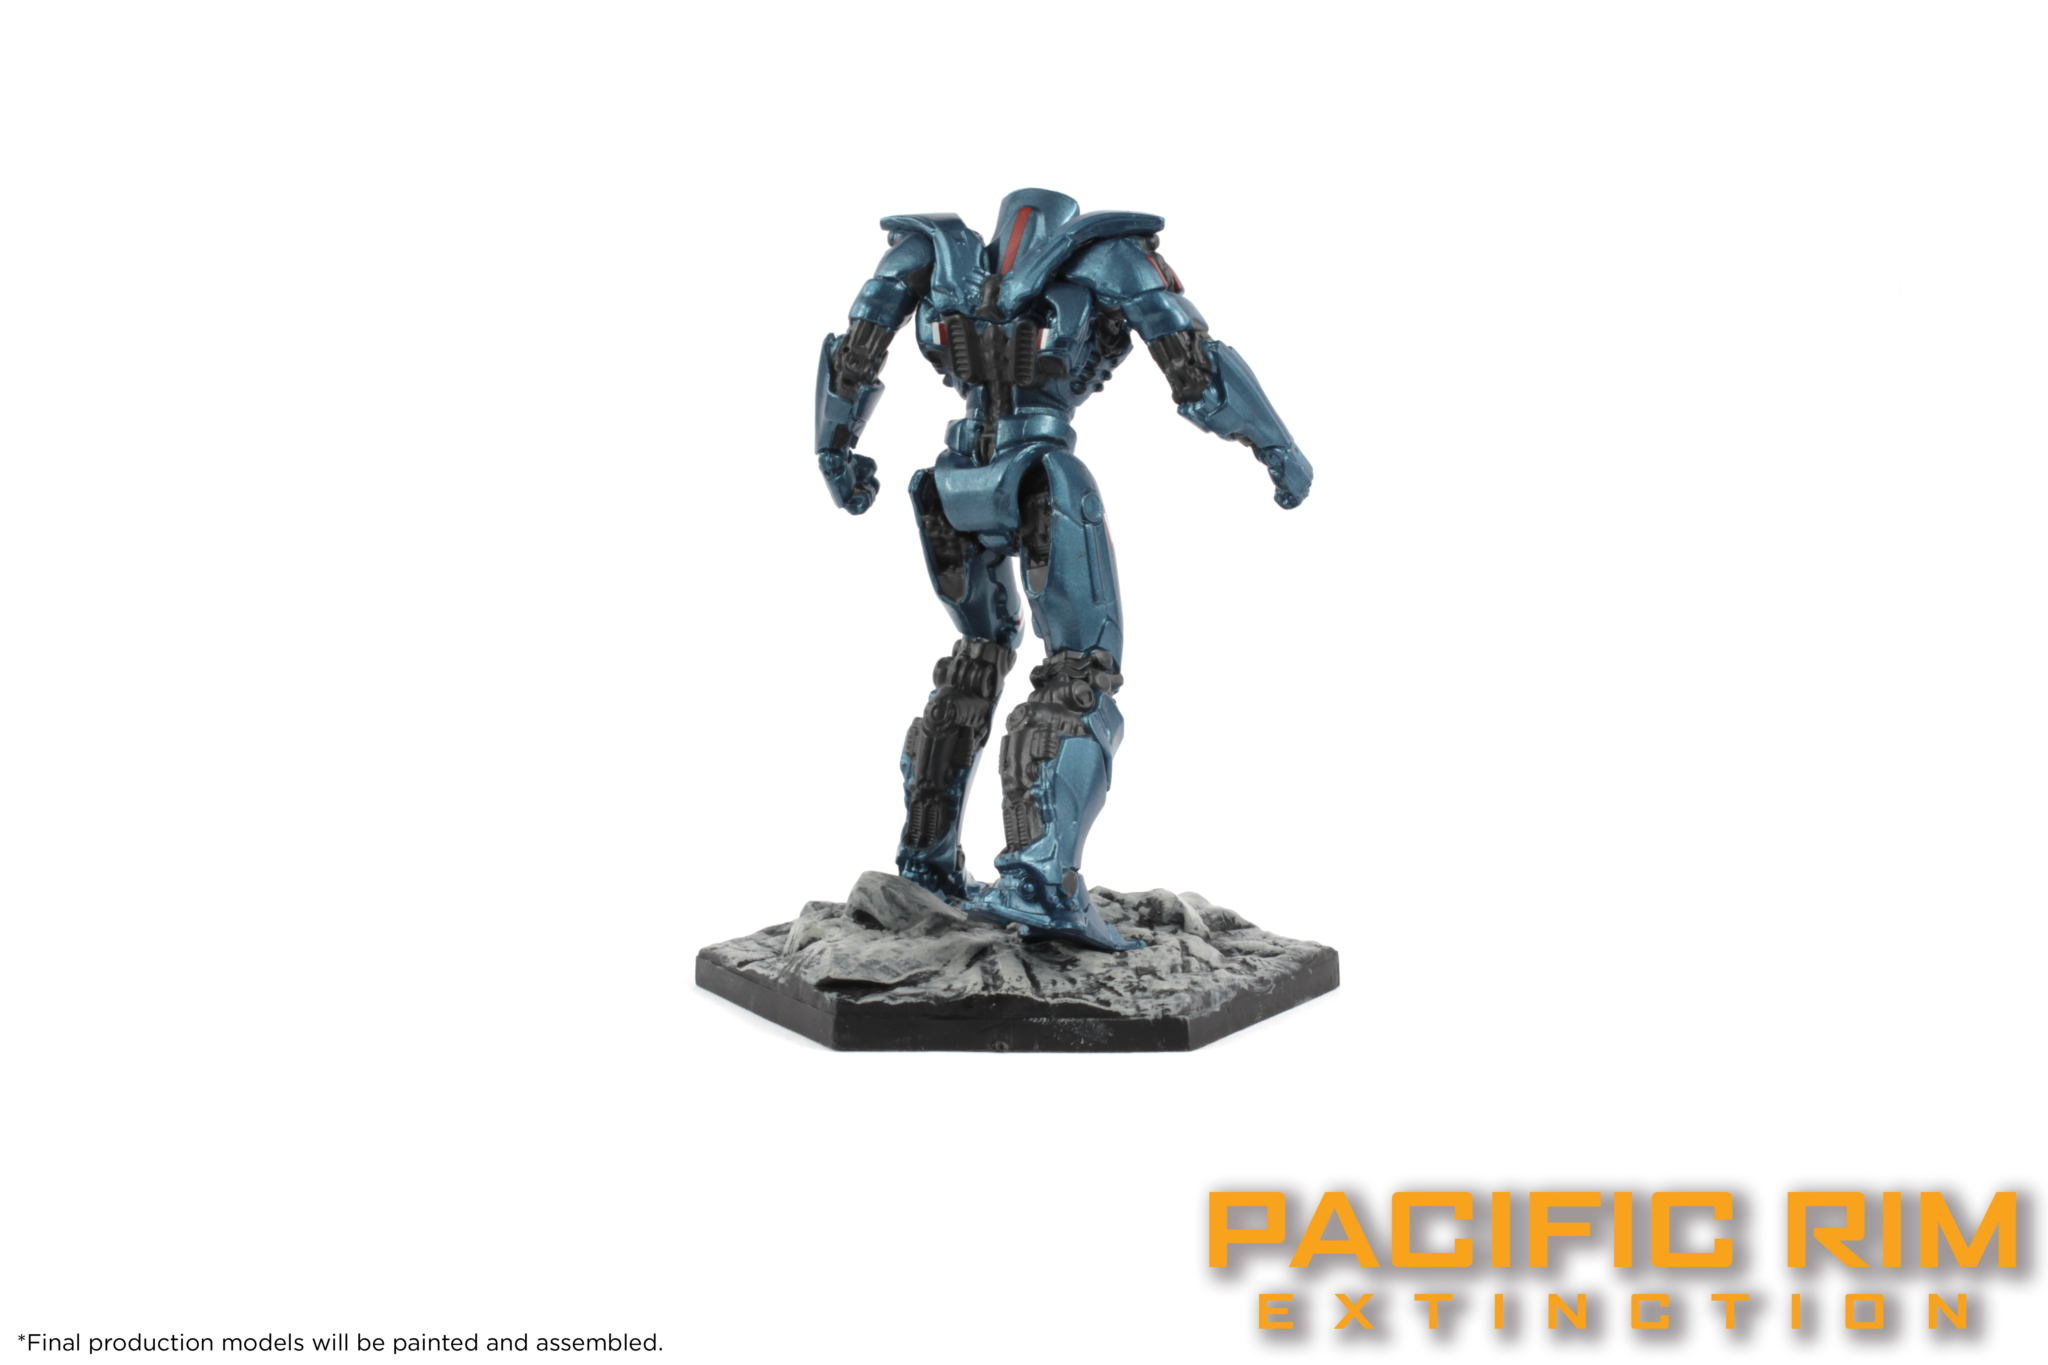 Gypsy Danger for Pacific Rim: Extinction by River Horse